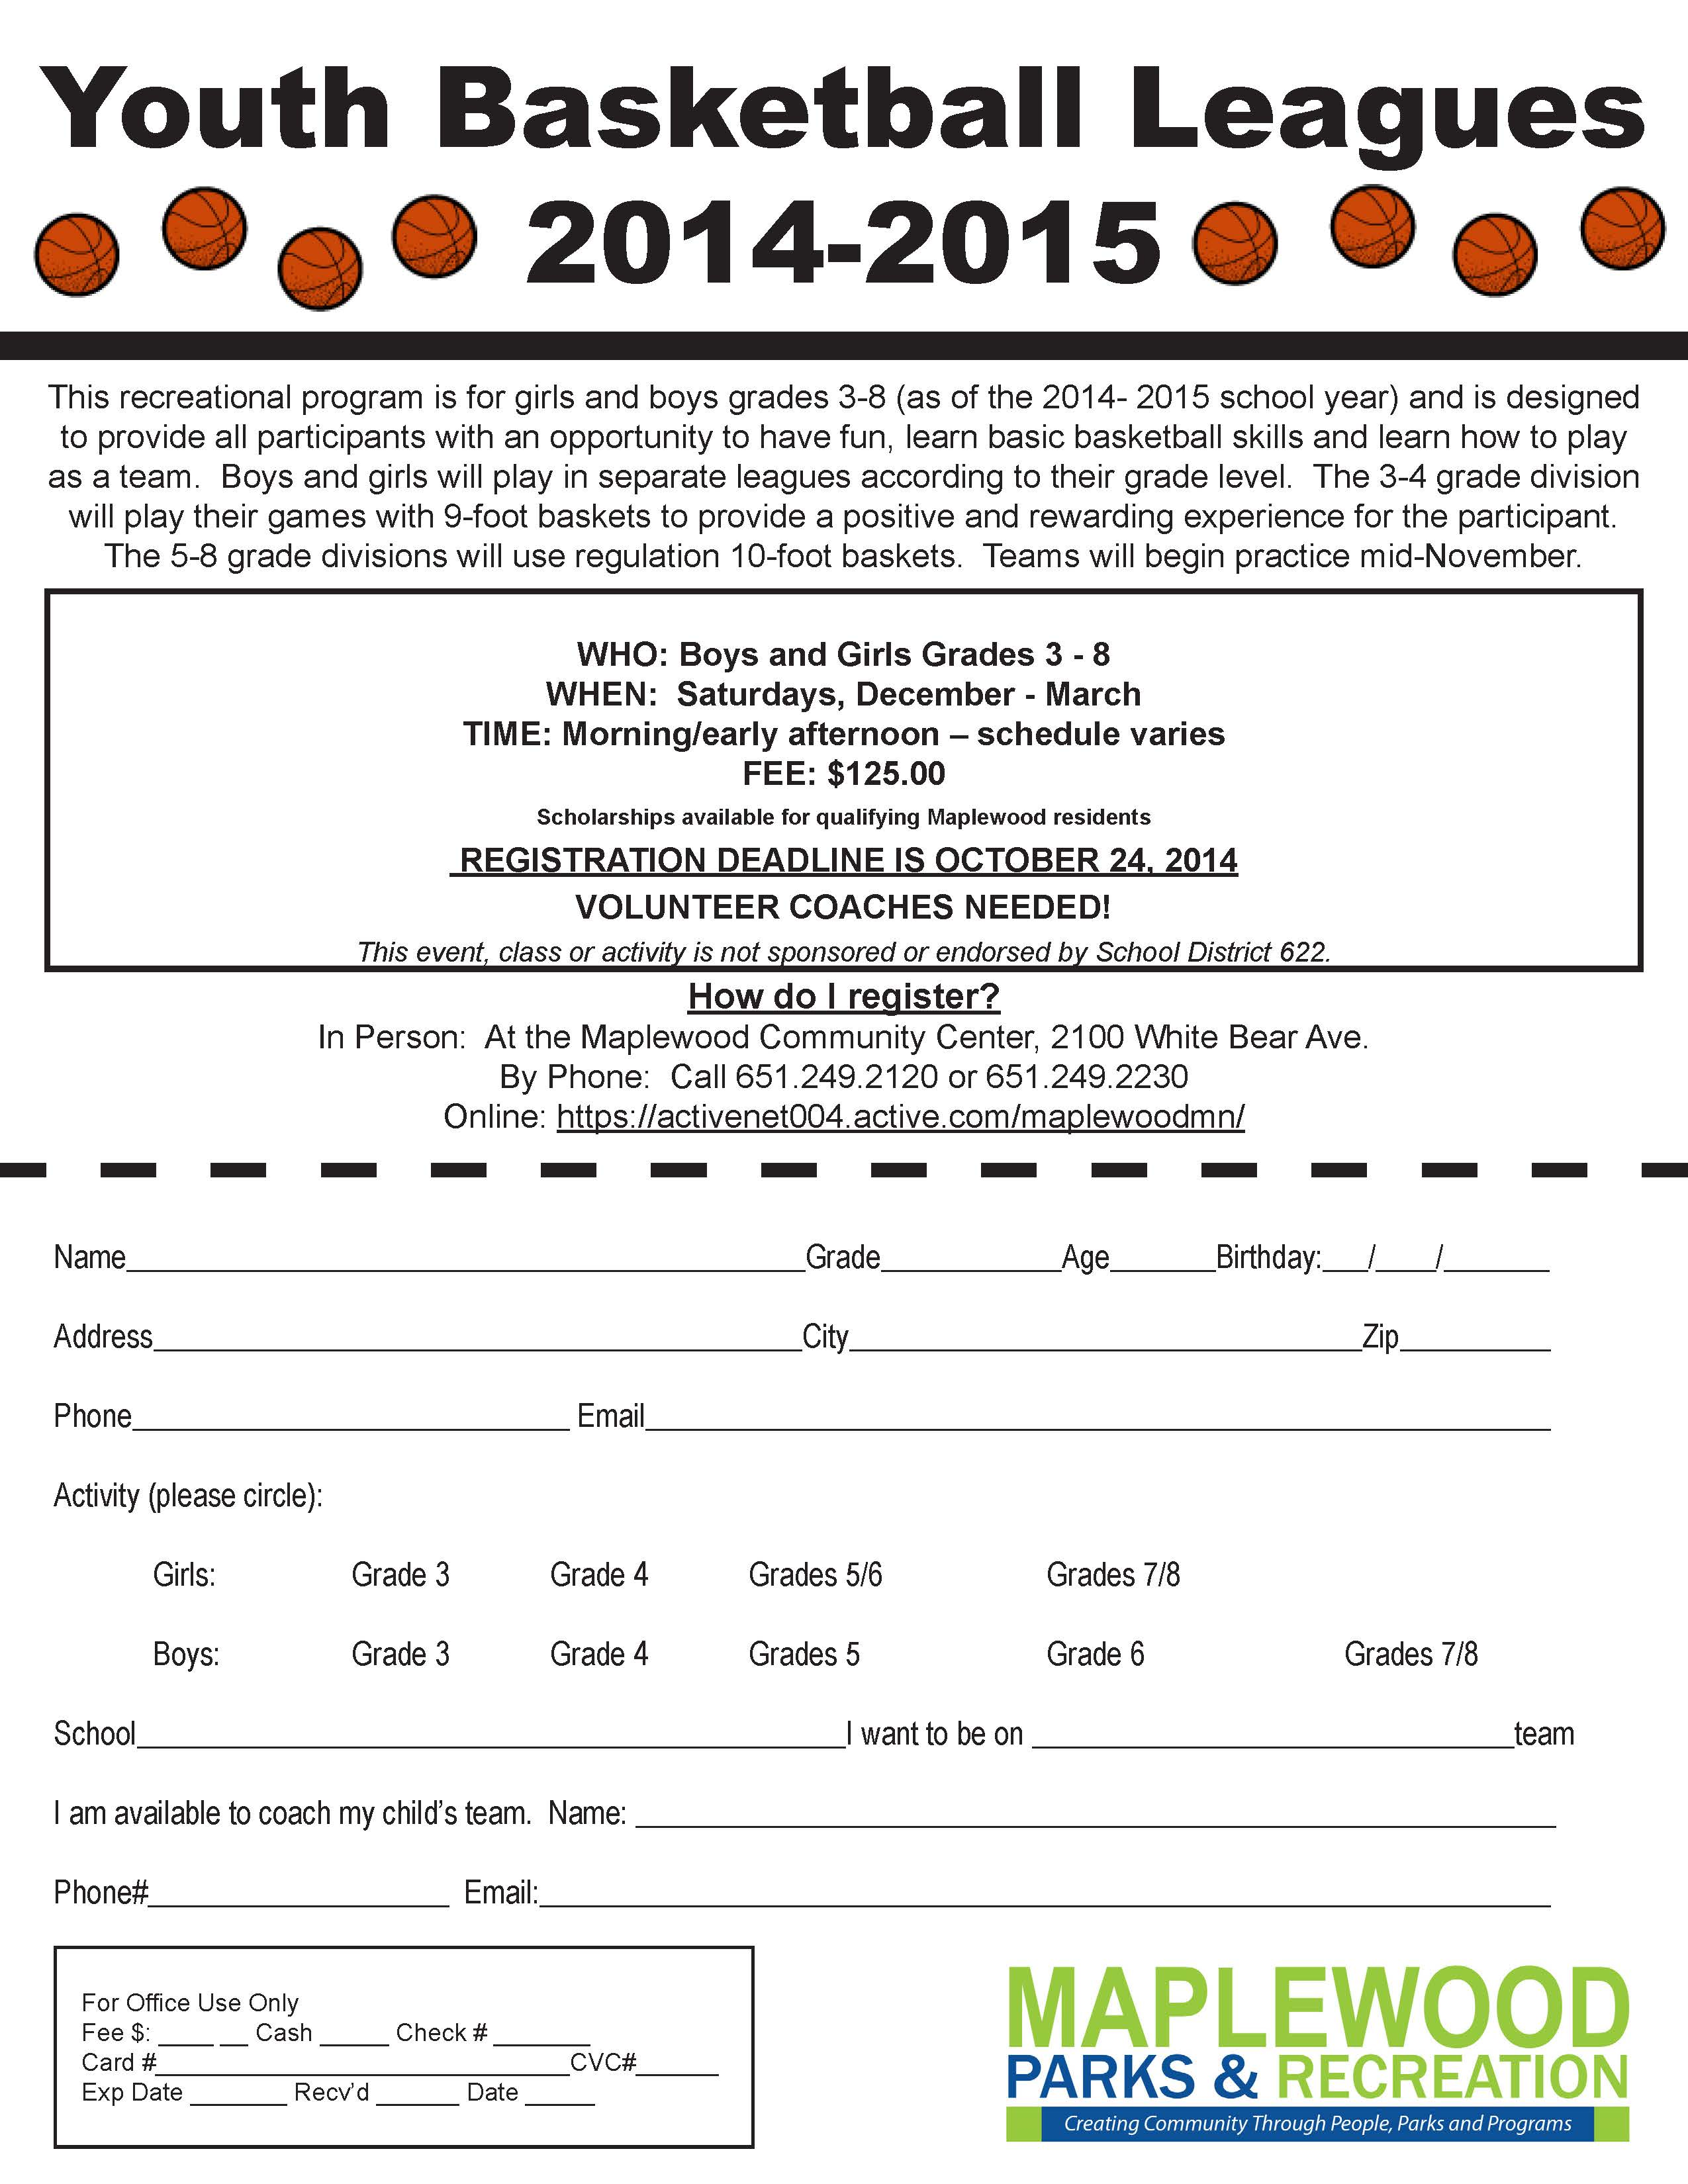 Youth Basketball Flyer 2014-2015.jpg